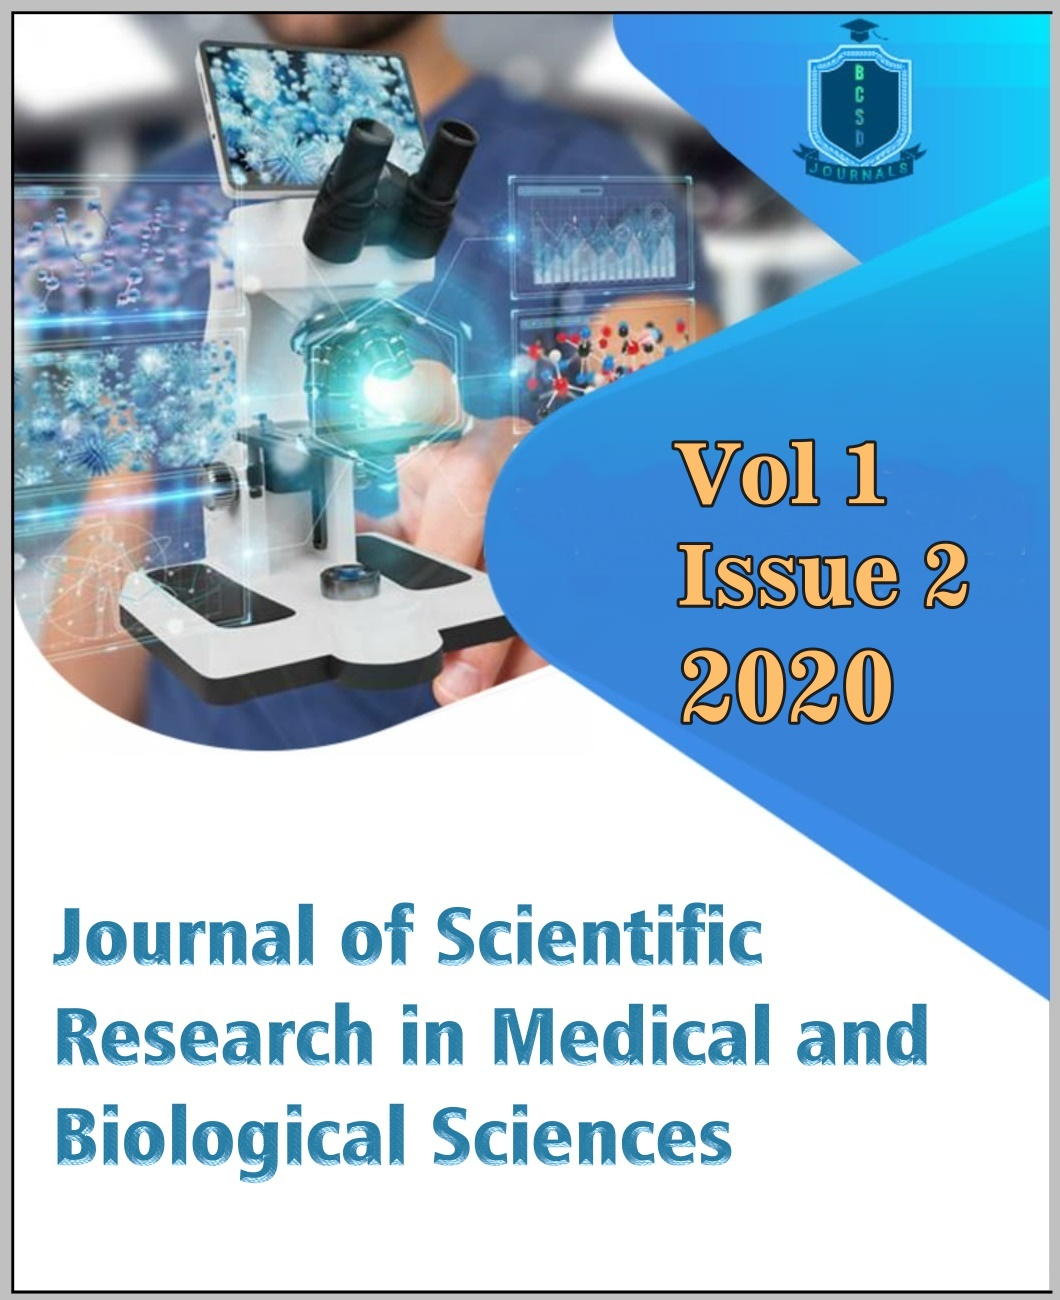 View Vol. 1 No. 2 (2020): Journal of Scientific Research in Medical and Biological Sciences